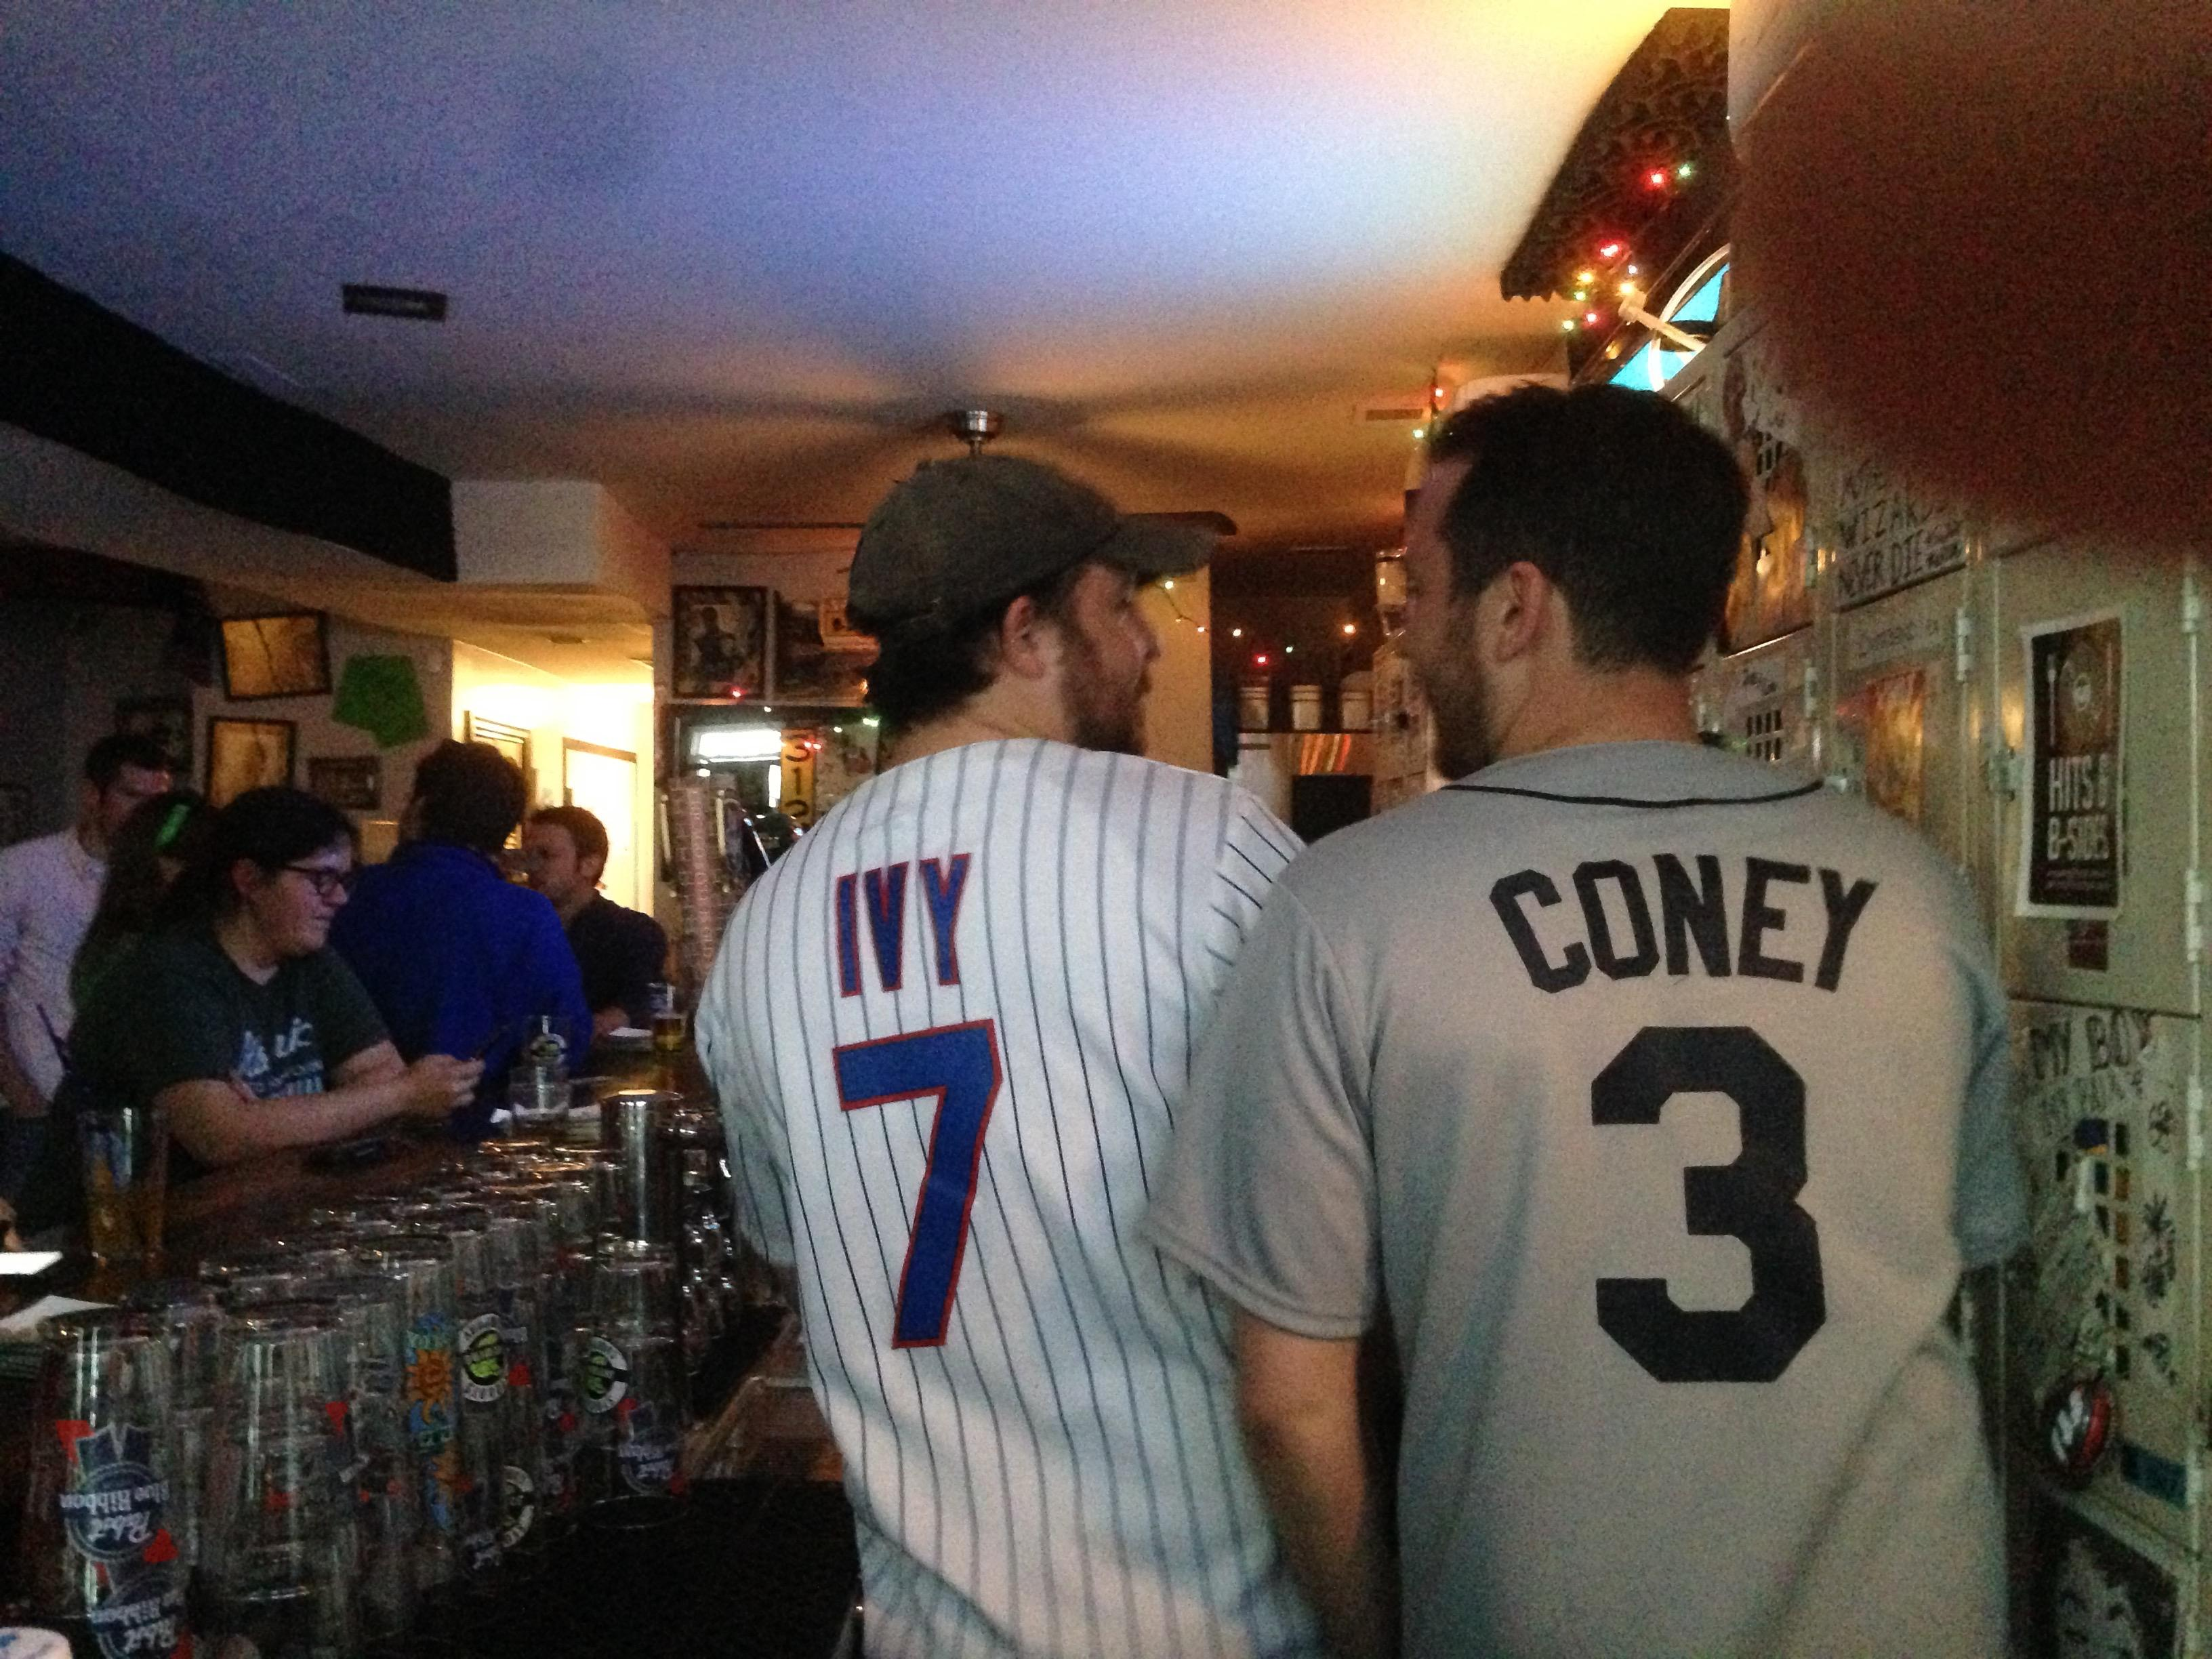 "After joking around about opening a Hanukkah bar for several years, the owners of Ivy and Coney decided 2017 was their year, and will be opening a Hanukkah pop-up bar for the month of December called ""Chai-vy and Cohen-y."" (Image: Courtesy Ivy and Coney)"